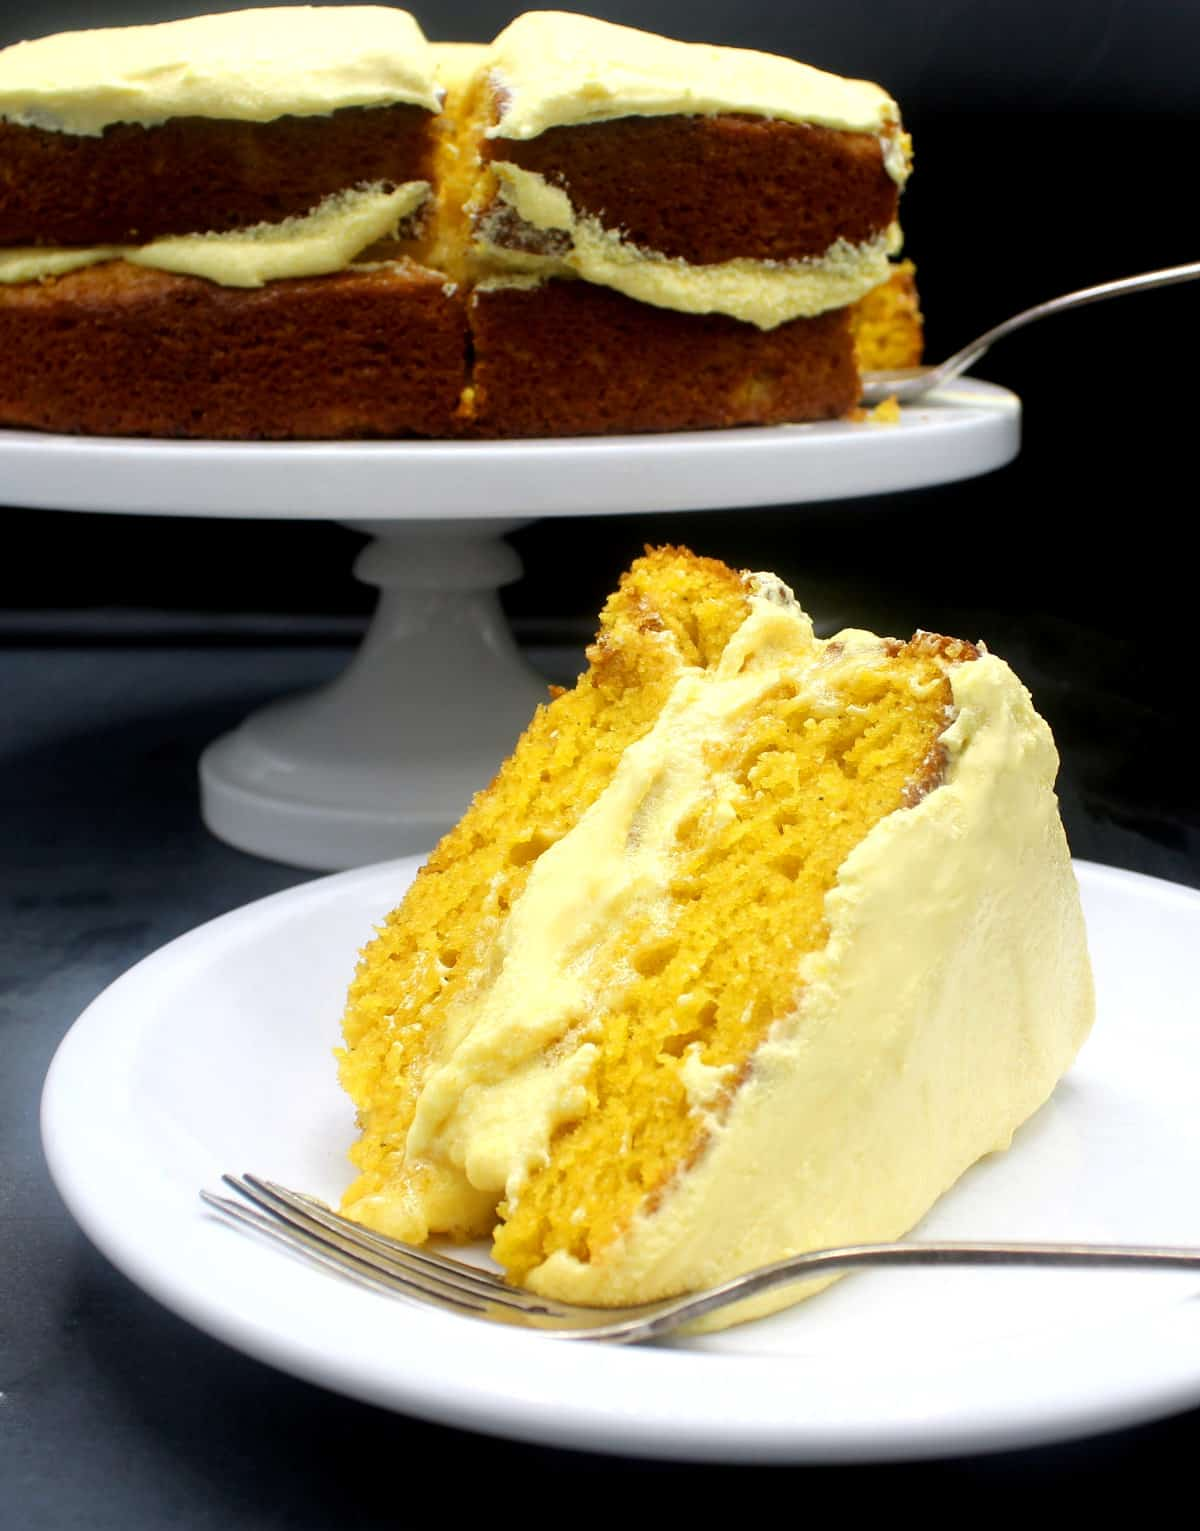 Photo of a slice of mango cake with mango buttercream on white plate with a fork and the sliced cake in the background.